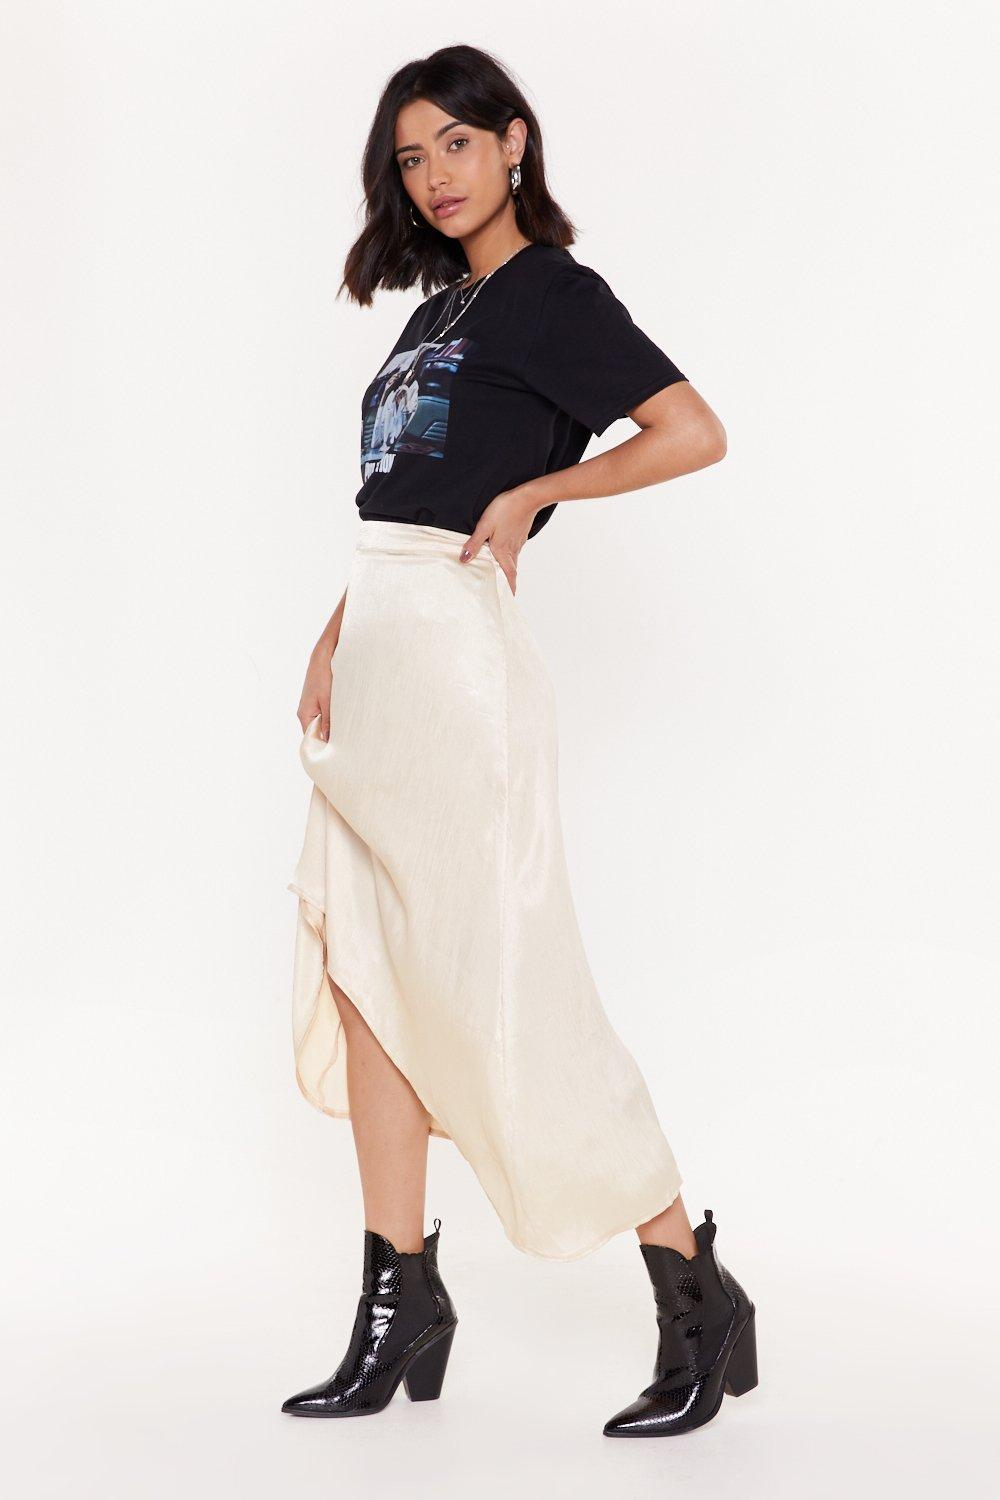 a9f4ec96b5 When They Go Low Satin Midi Skirt | Shop Clothes at Nasty Gal!